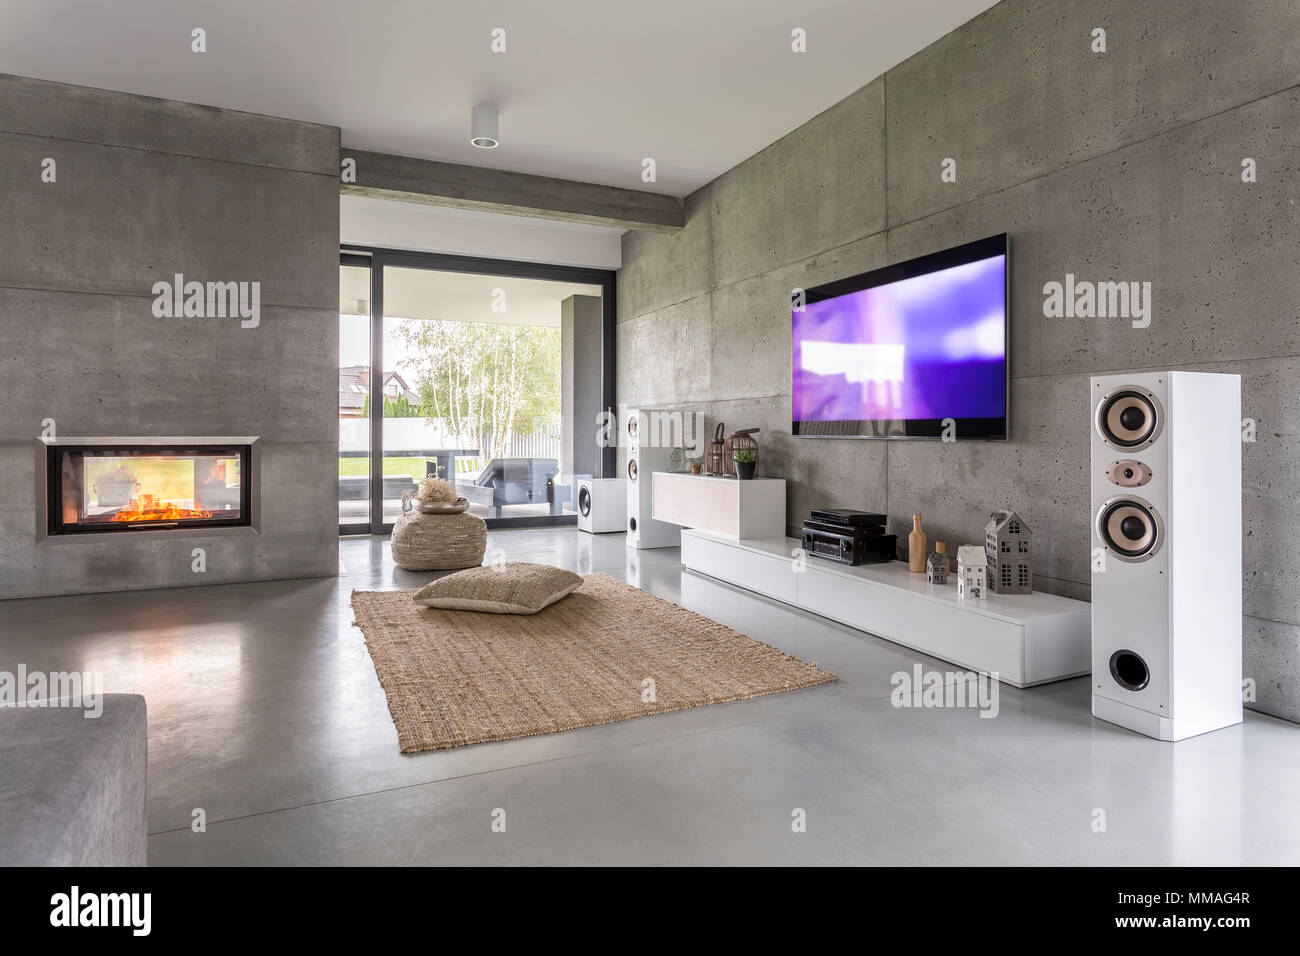 Tv living room with window, fireplace and concrete wall effect Stock Photo